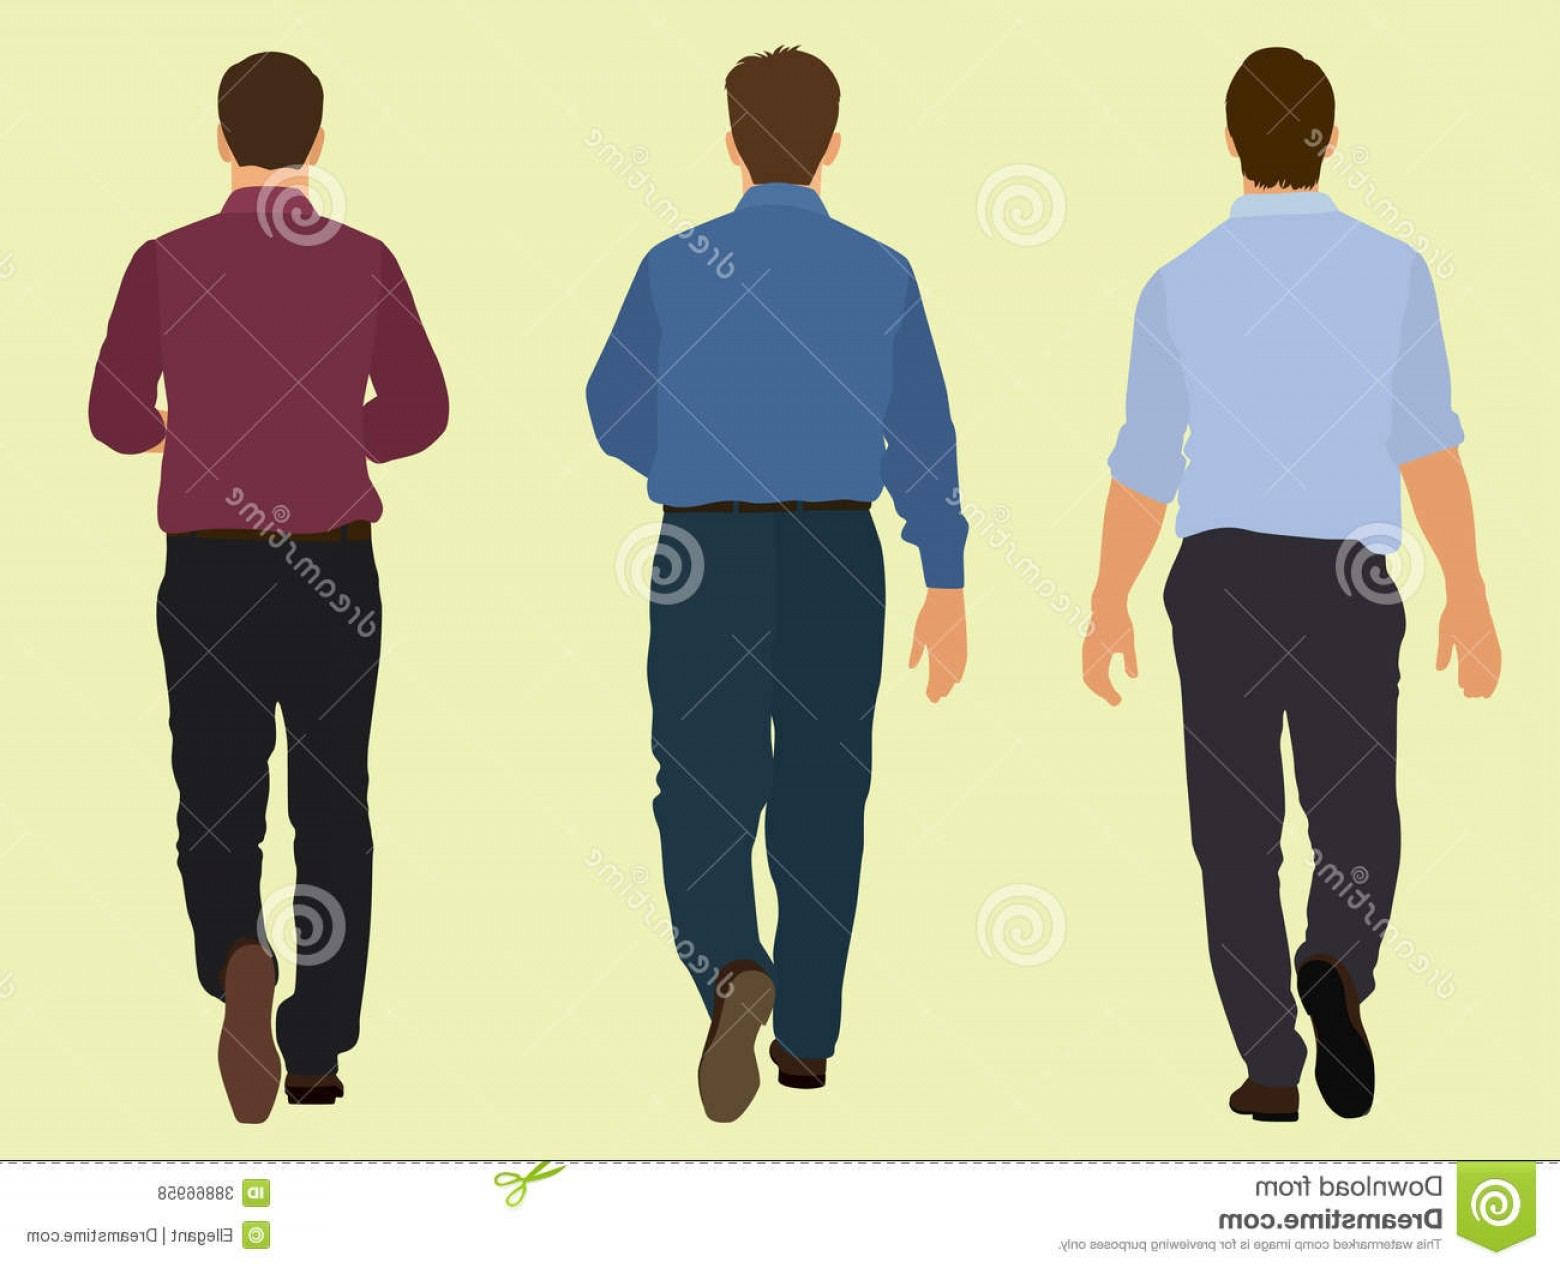 Walking Away Vector: Royalty Free Stock Photos Men Walking Away Wearing Business Suits Image